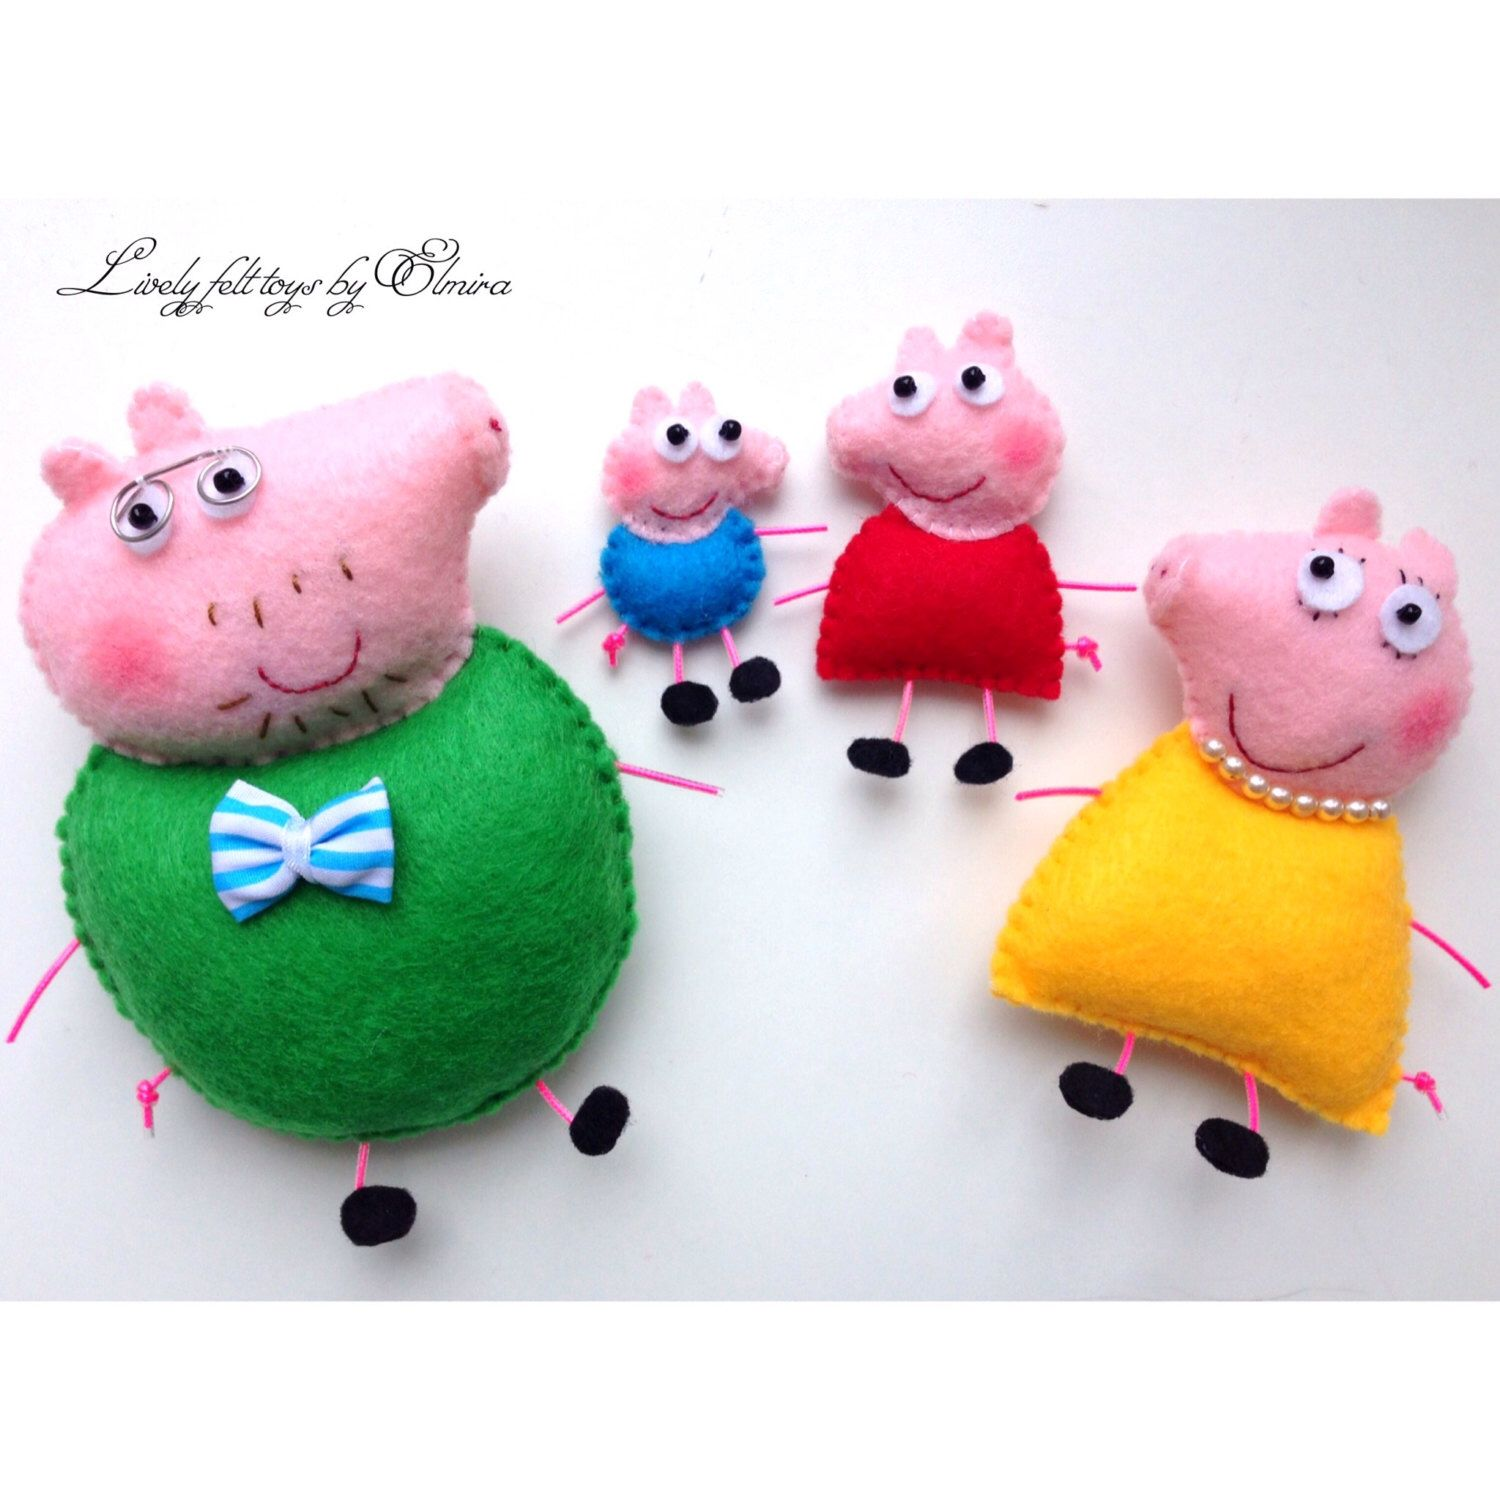 Pig christmas ornaments - Peppa Pig Little Pig Family Pig Felt Pig Christmas Ornaments